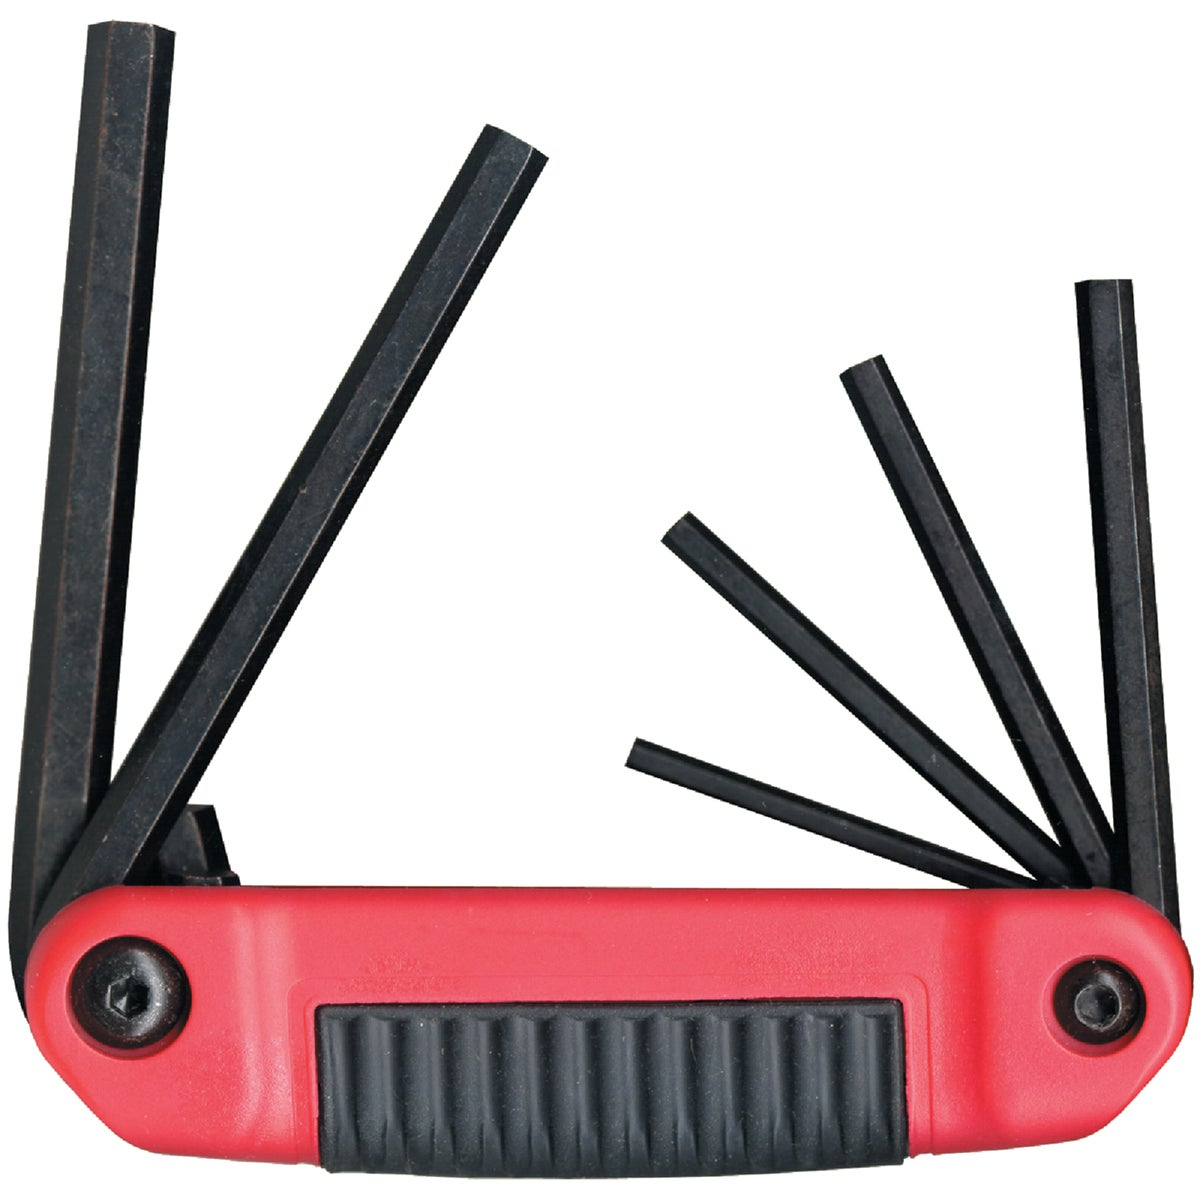 6PC HEX KEY SET - 25611 by Eklind